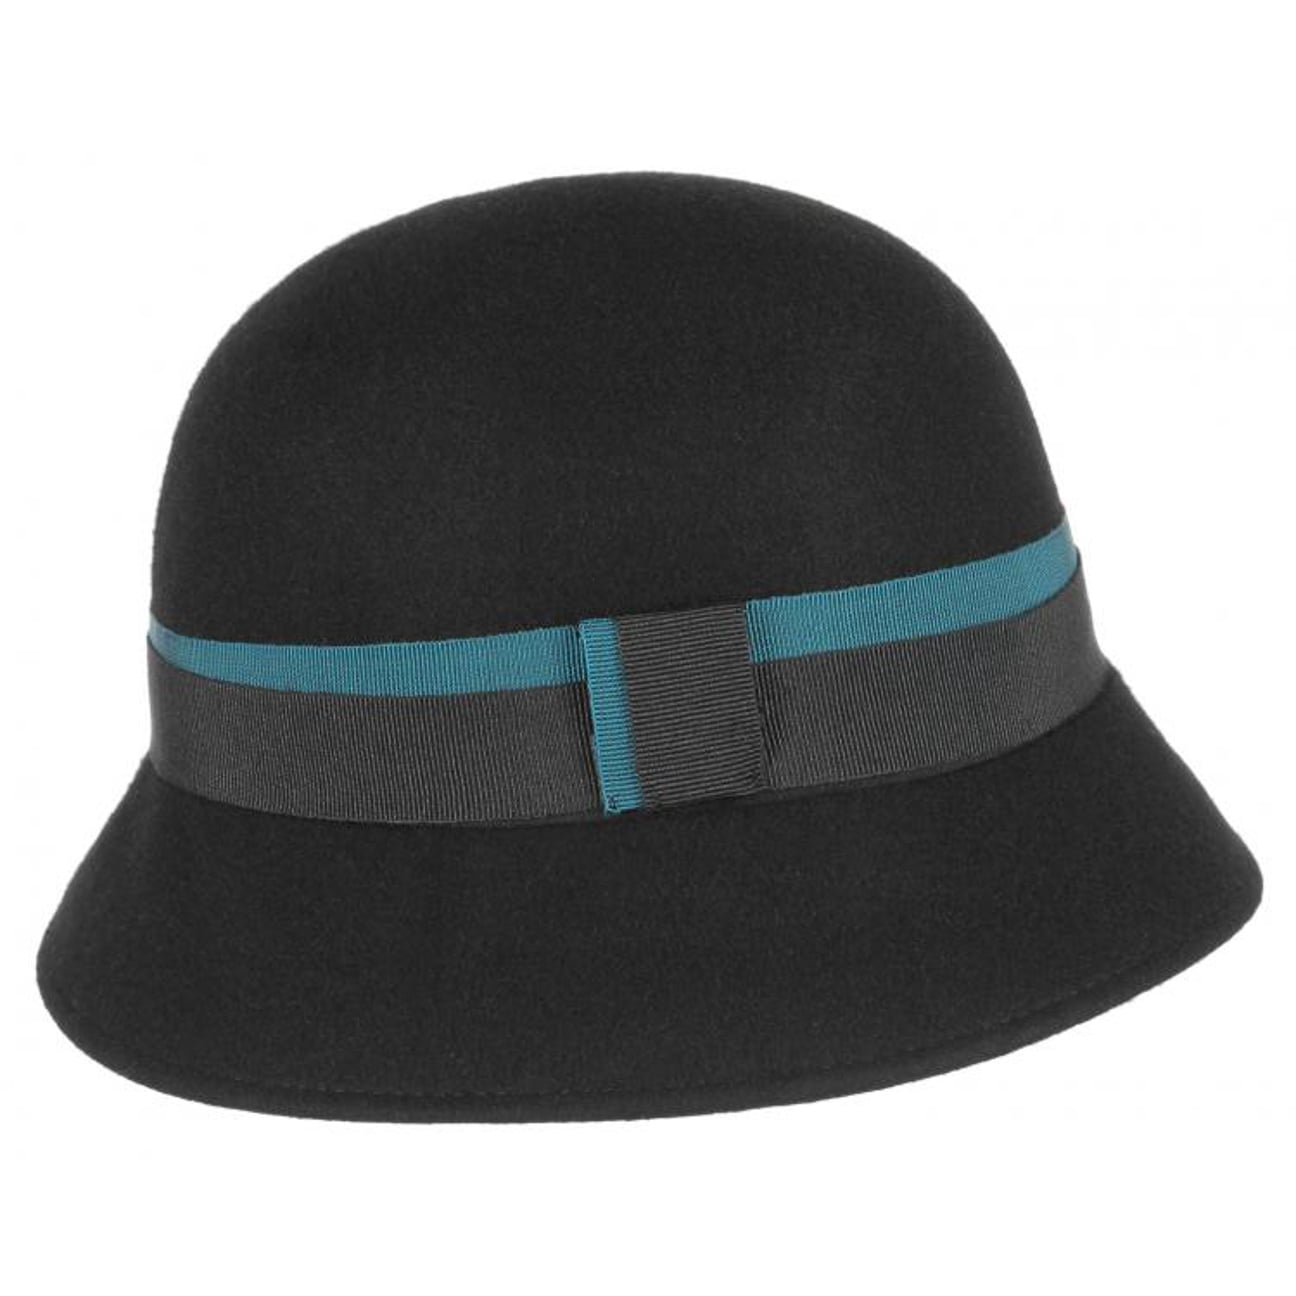 Cascavel Hat for Women - Sombreros - sombreroshop.es bd31448ee6f